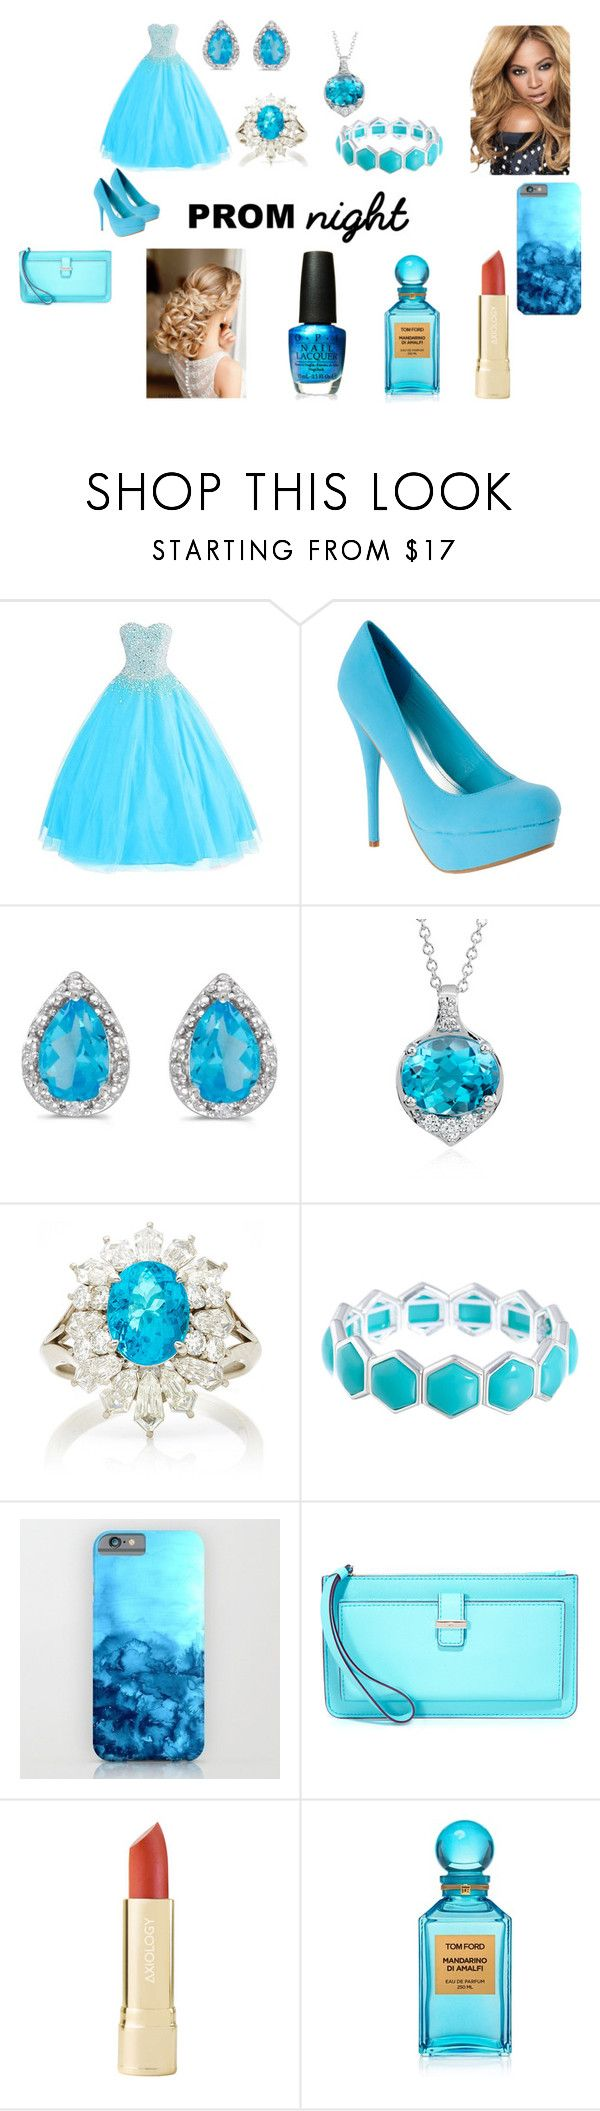 """""""Prom Night"""" by model06 on Polyvore featuring beauty, Amanda Rose Collection, Blue Nile, Martin Katz, Liz Claiborne, Kate Spade, Tom Ford and OPI"""